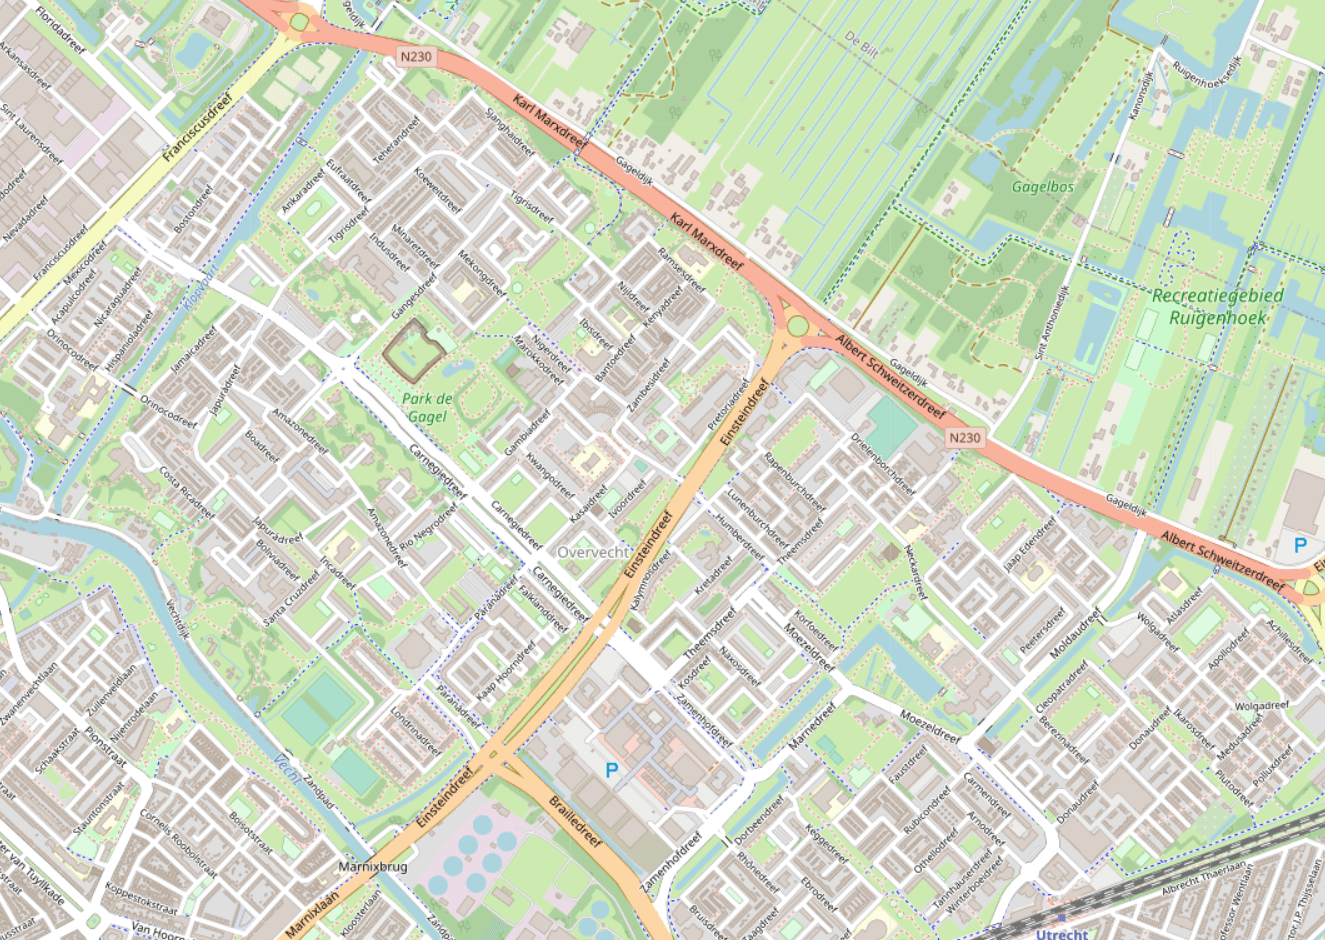 Overvecht in OpenStreetMap